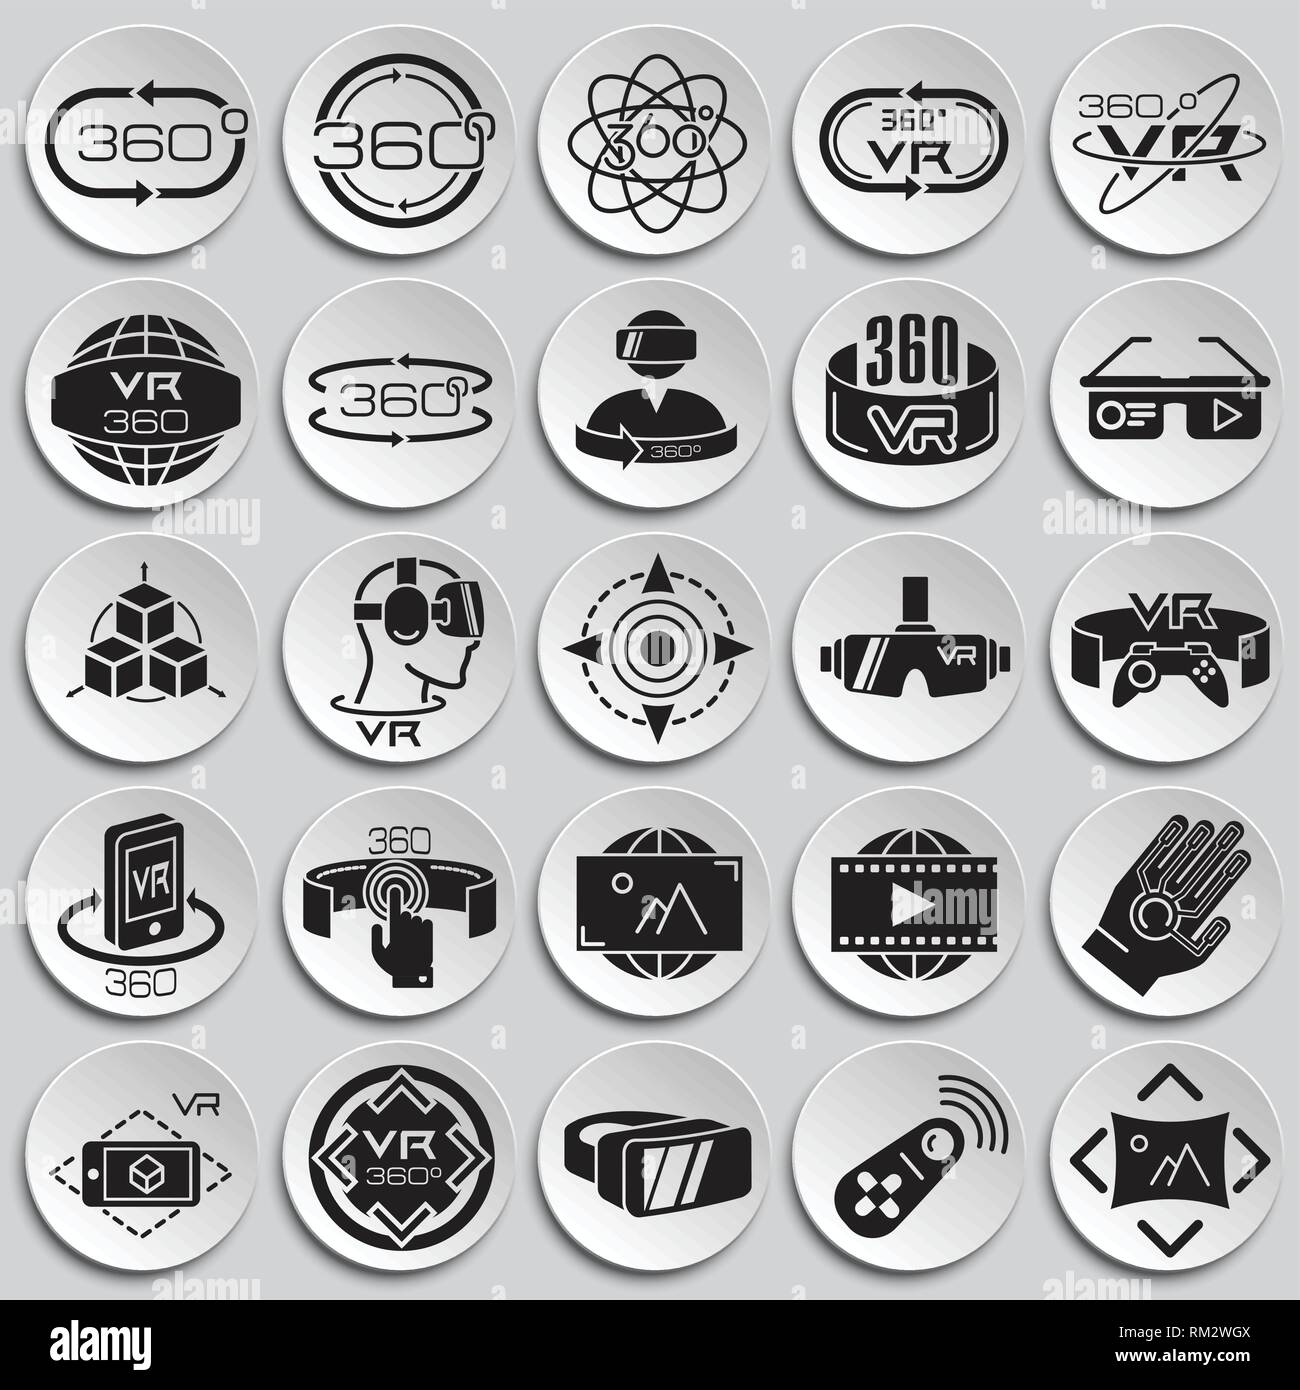 7776779d837 Virtual reality icons set on plates background for graphic and web design